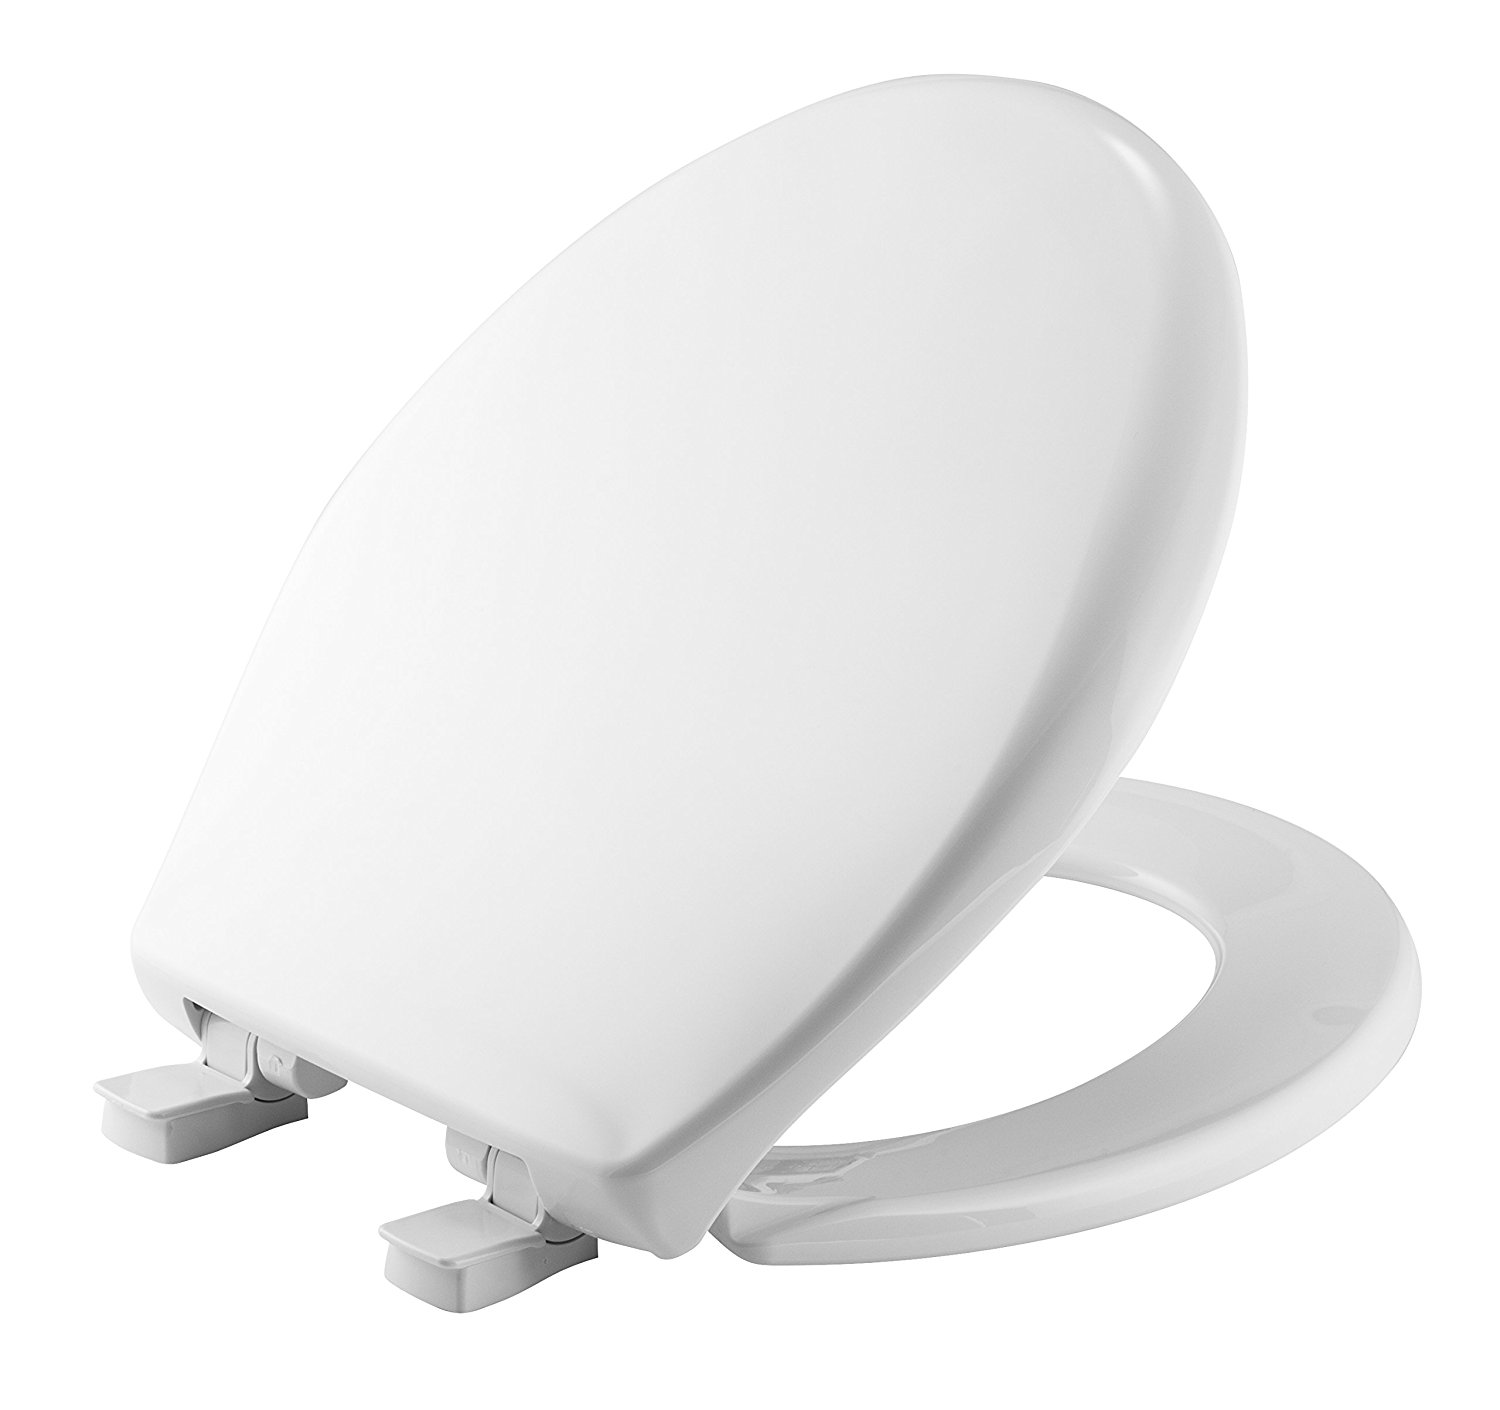 Mayfair 20SLOWE 000 Slow-Close Plastic Toilet Seat featuring Whisper-Close, Easy Clean & Change Hinges and STA-TITE Seat Fastening System, Round, White